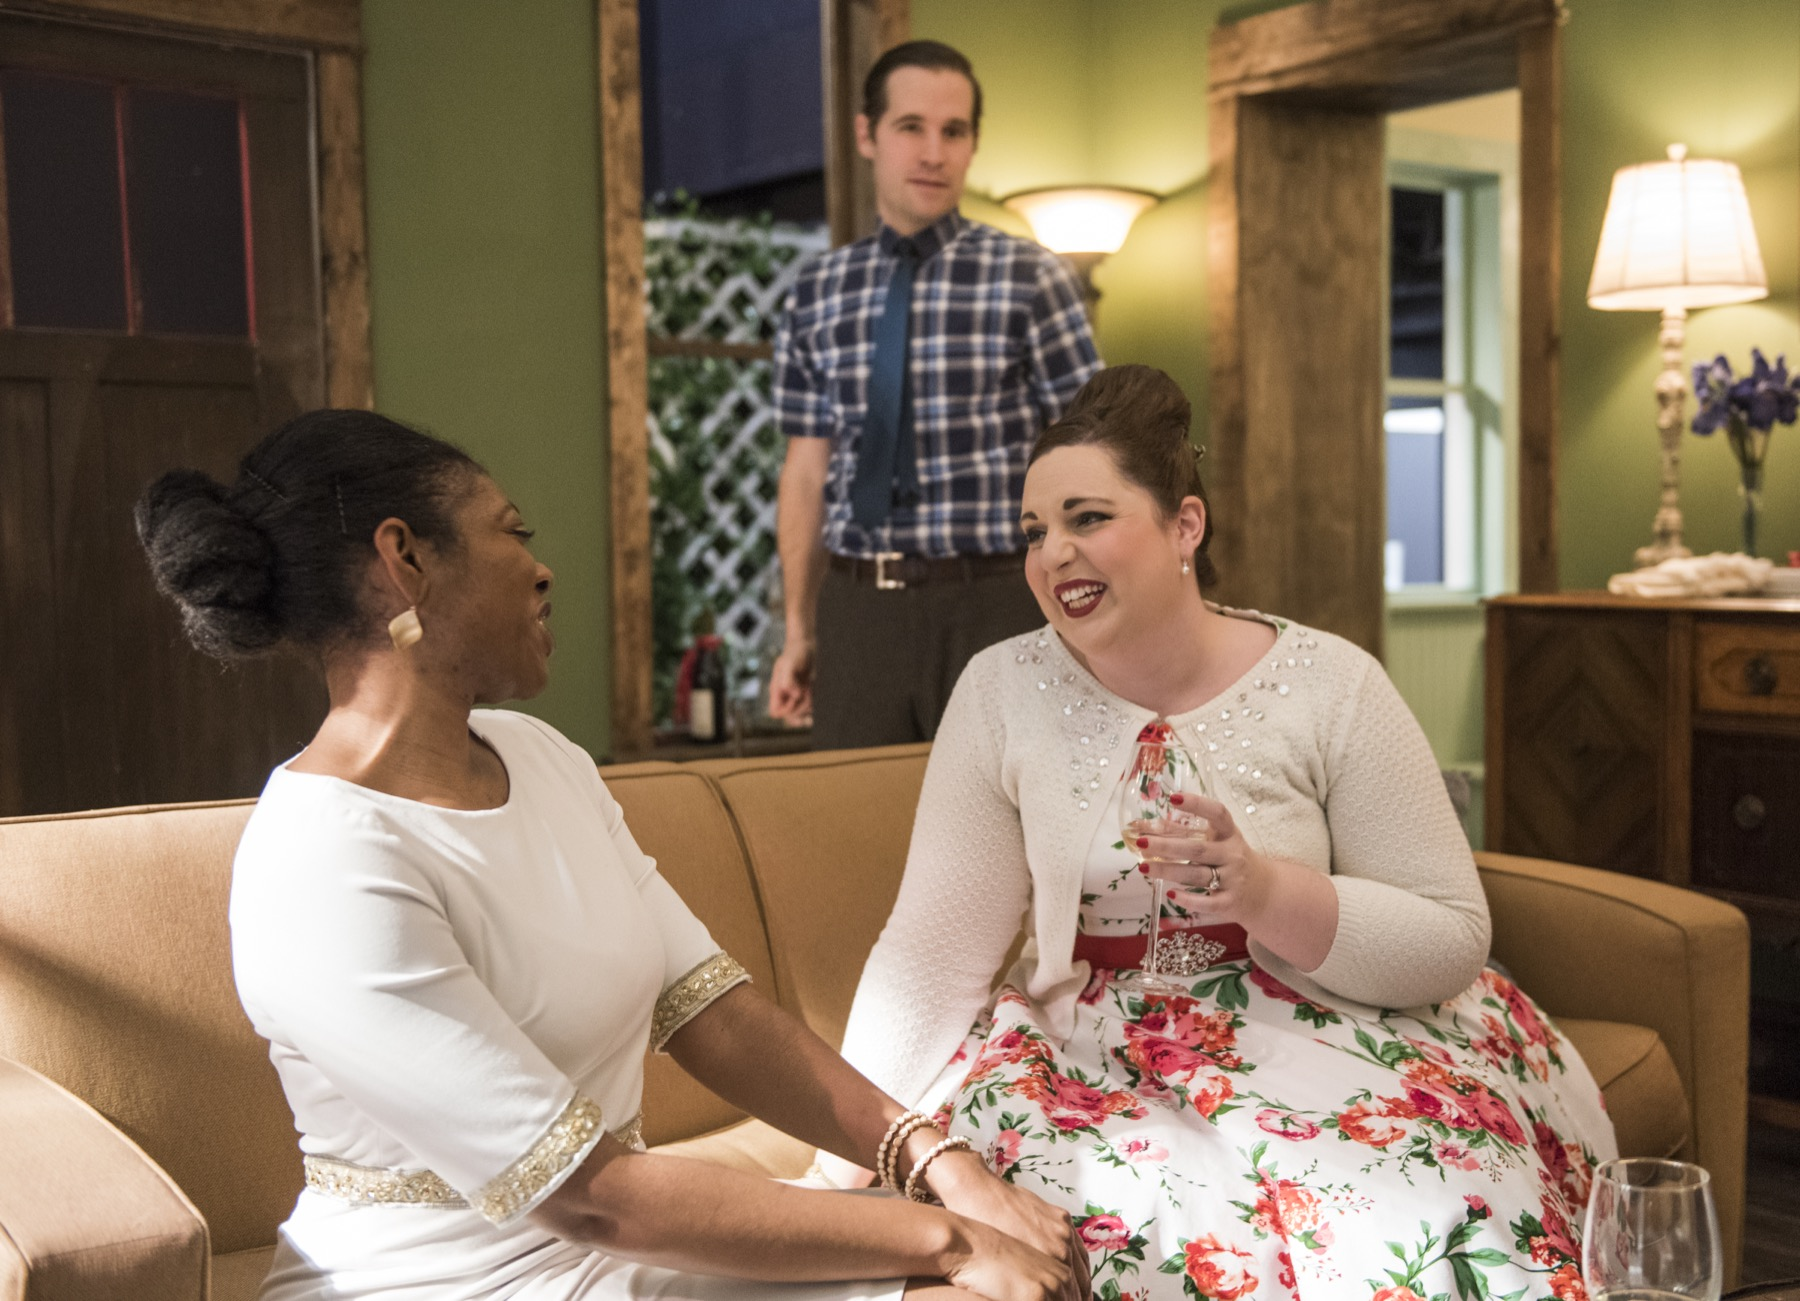 Arielle Leverett, Michael McKeough and Amy Malcom in Southern Gothic at Windy City Playhouse South